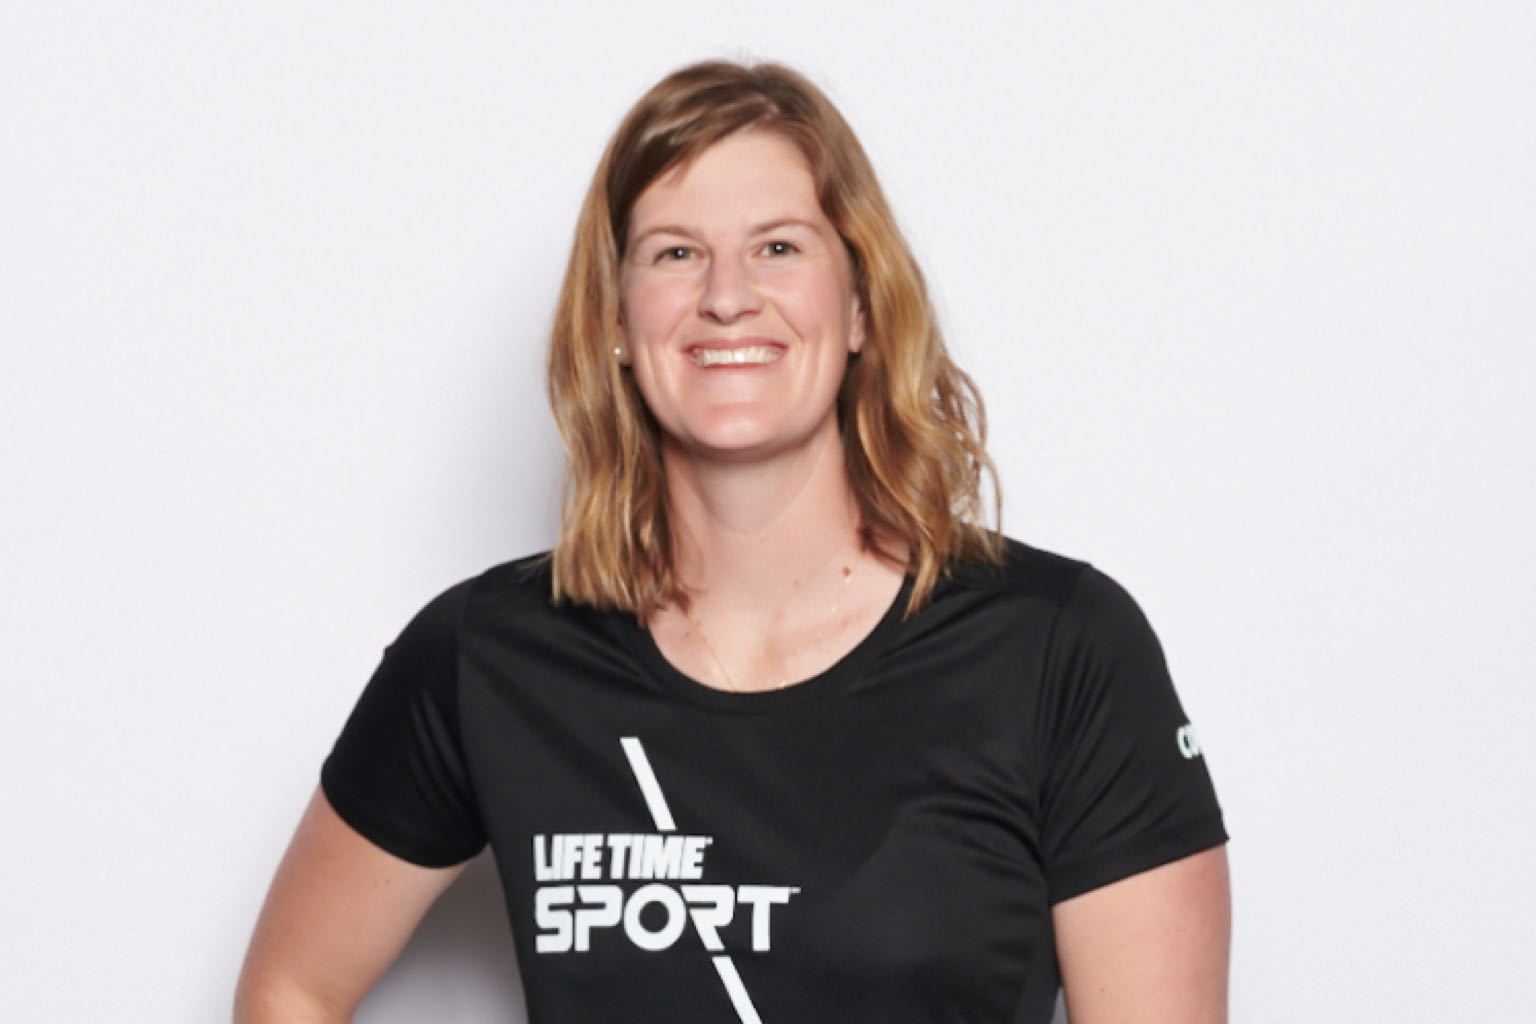 A head shot of Sara C, a summer clinics coach at the Life Time Sport at Winter Park